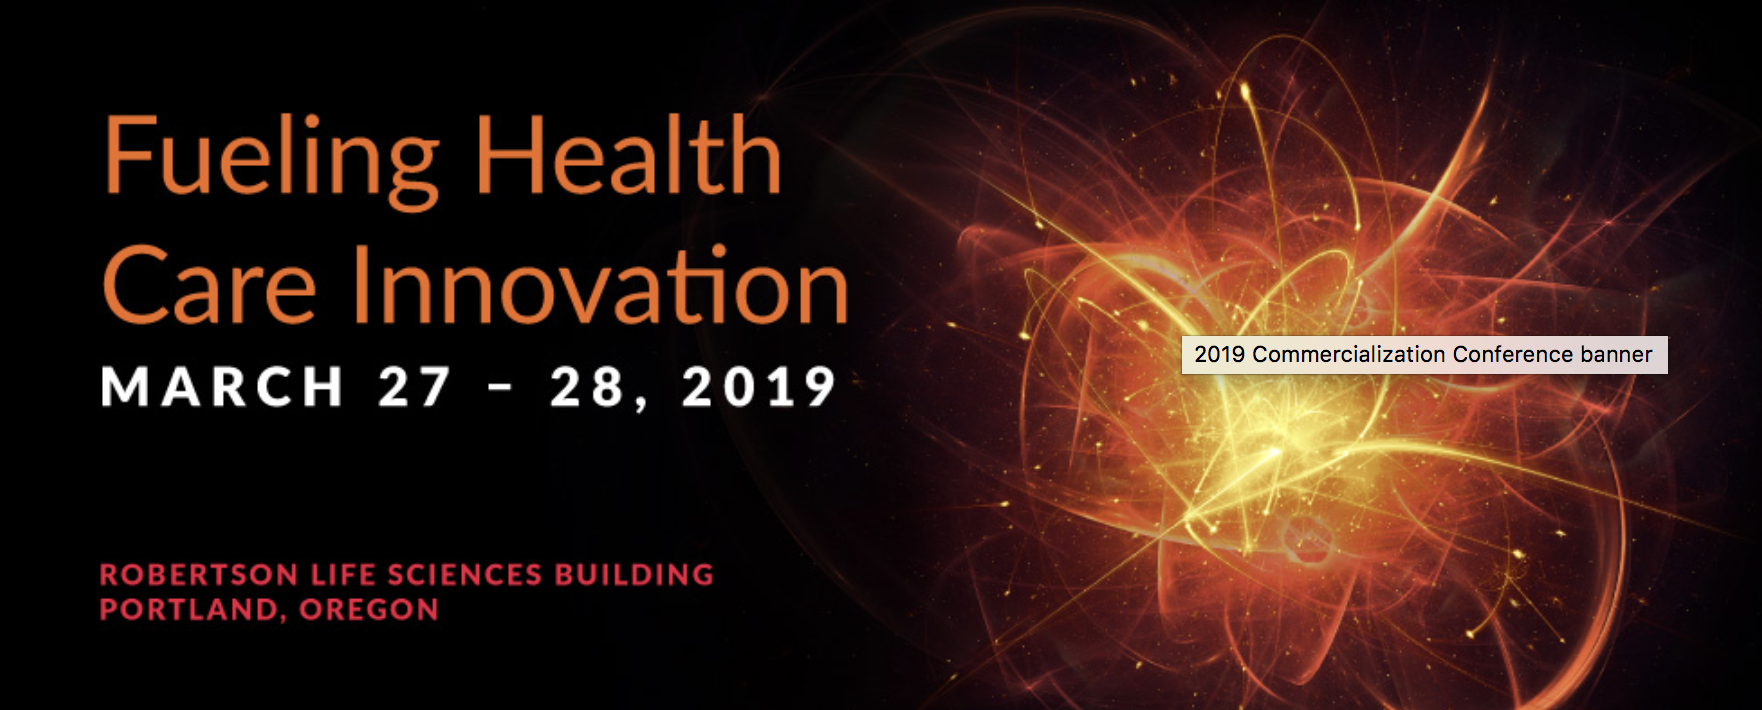 Commercialization Conference: fueling healthcare innovation